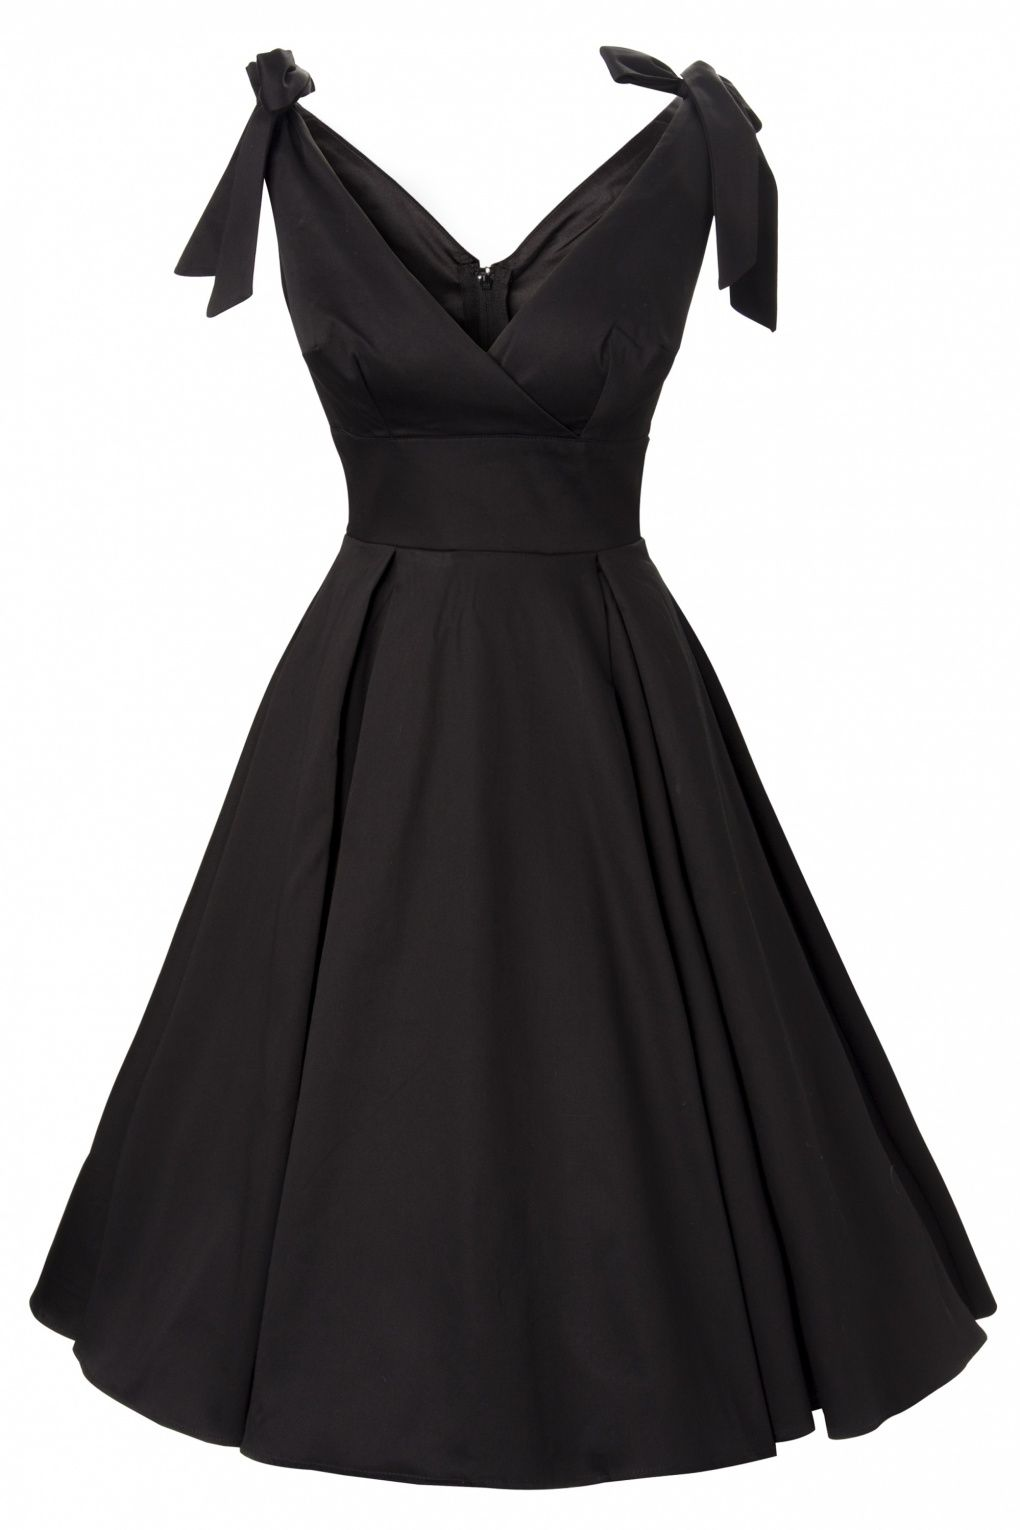 50s Tie Me Up dress in Black sateen Deadly Dames. Classy Cocktail  DressVintage ...